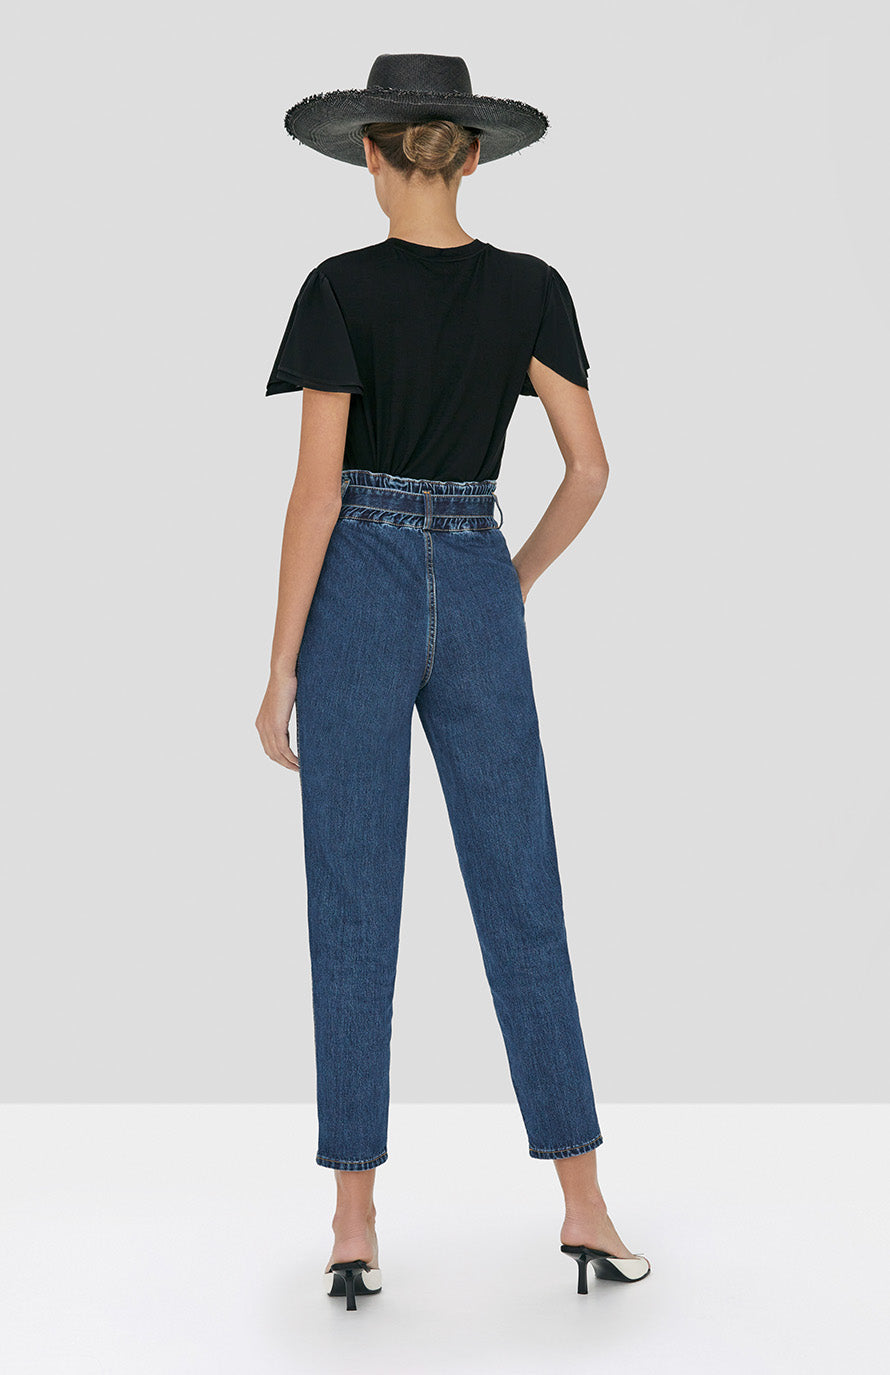 Alexis Ronson Top in Black and Stannis Denim Pant in Washed Denim from Spring Summer 2020 Collection - Rear View